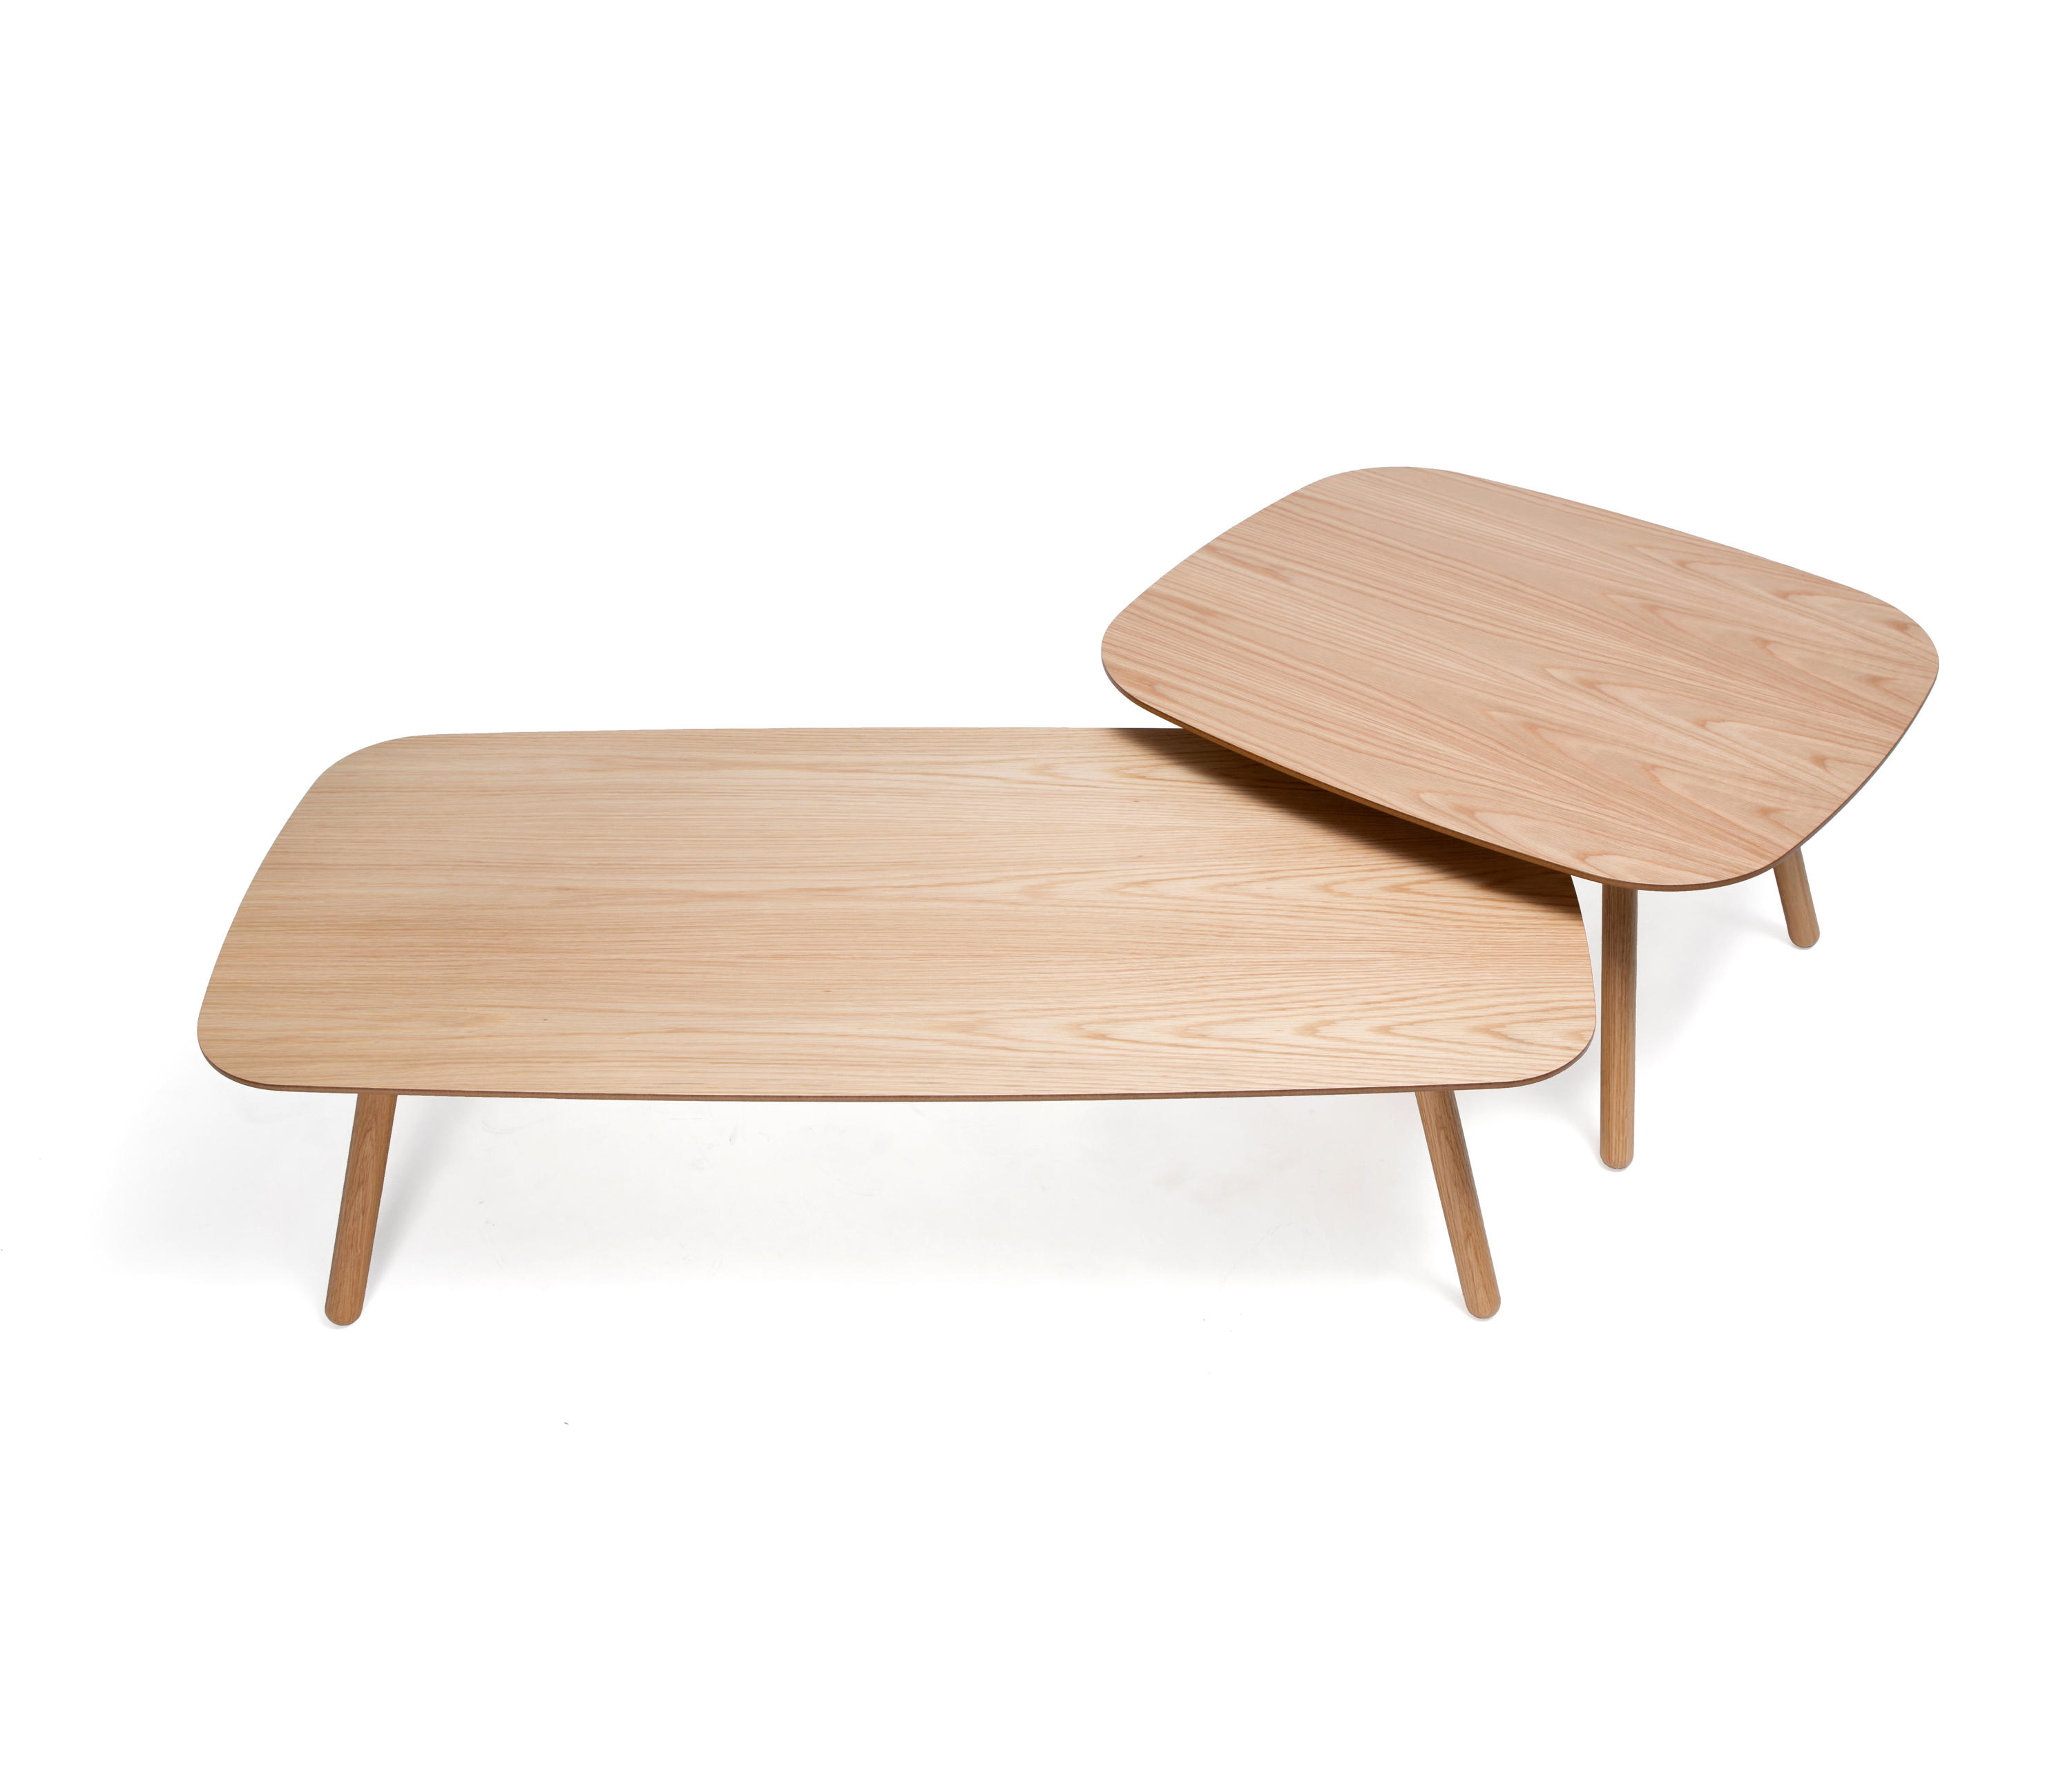 BONDO WOOD Side tables from Inno